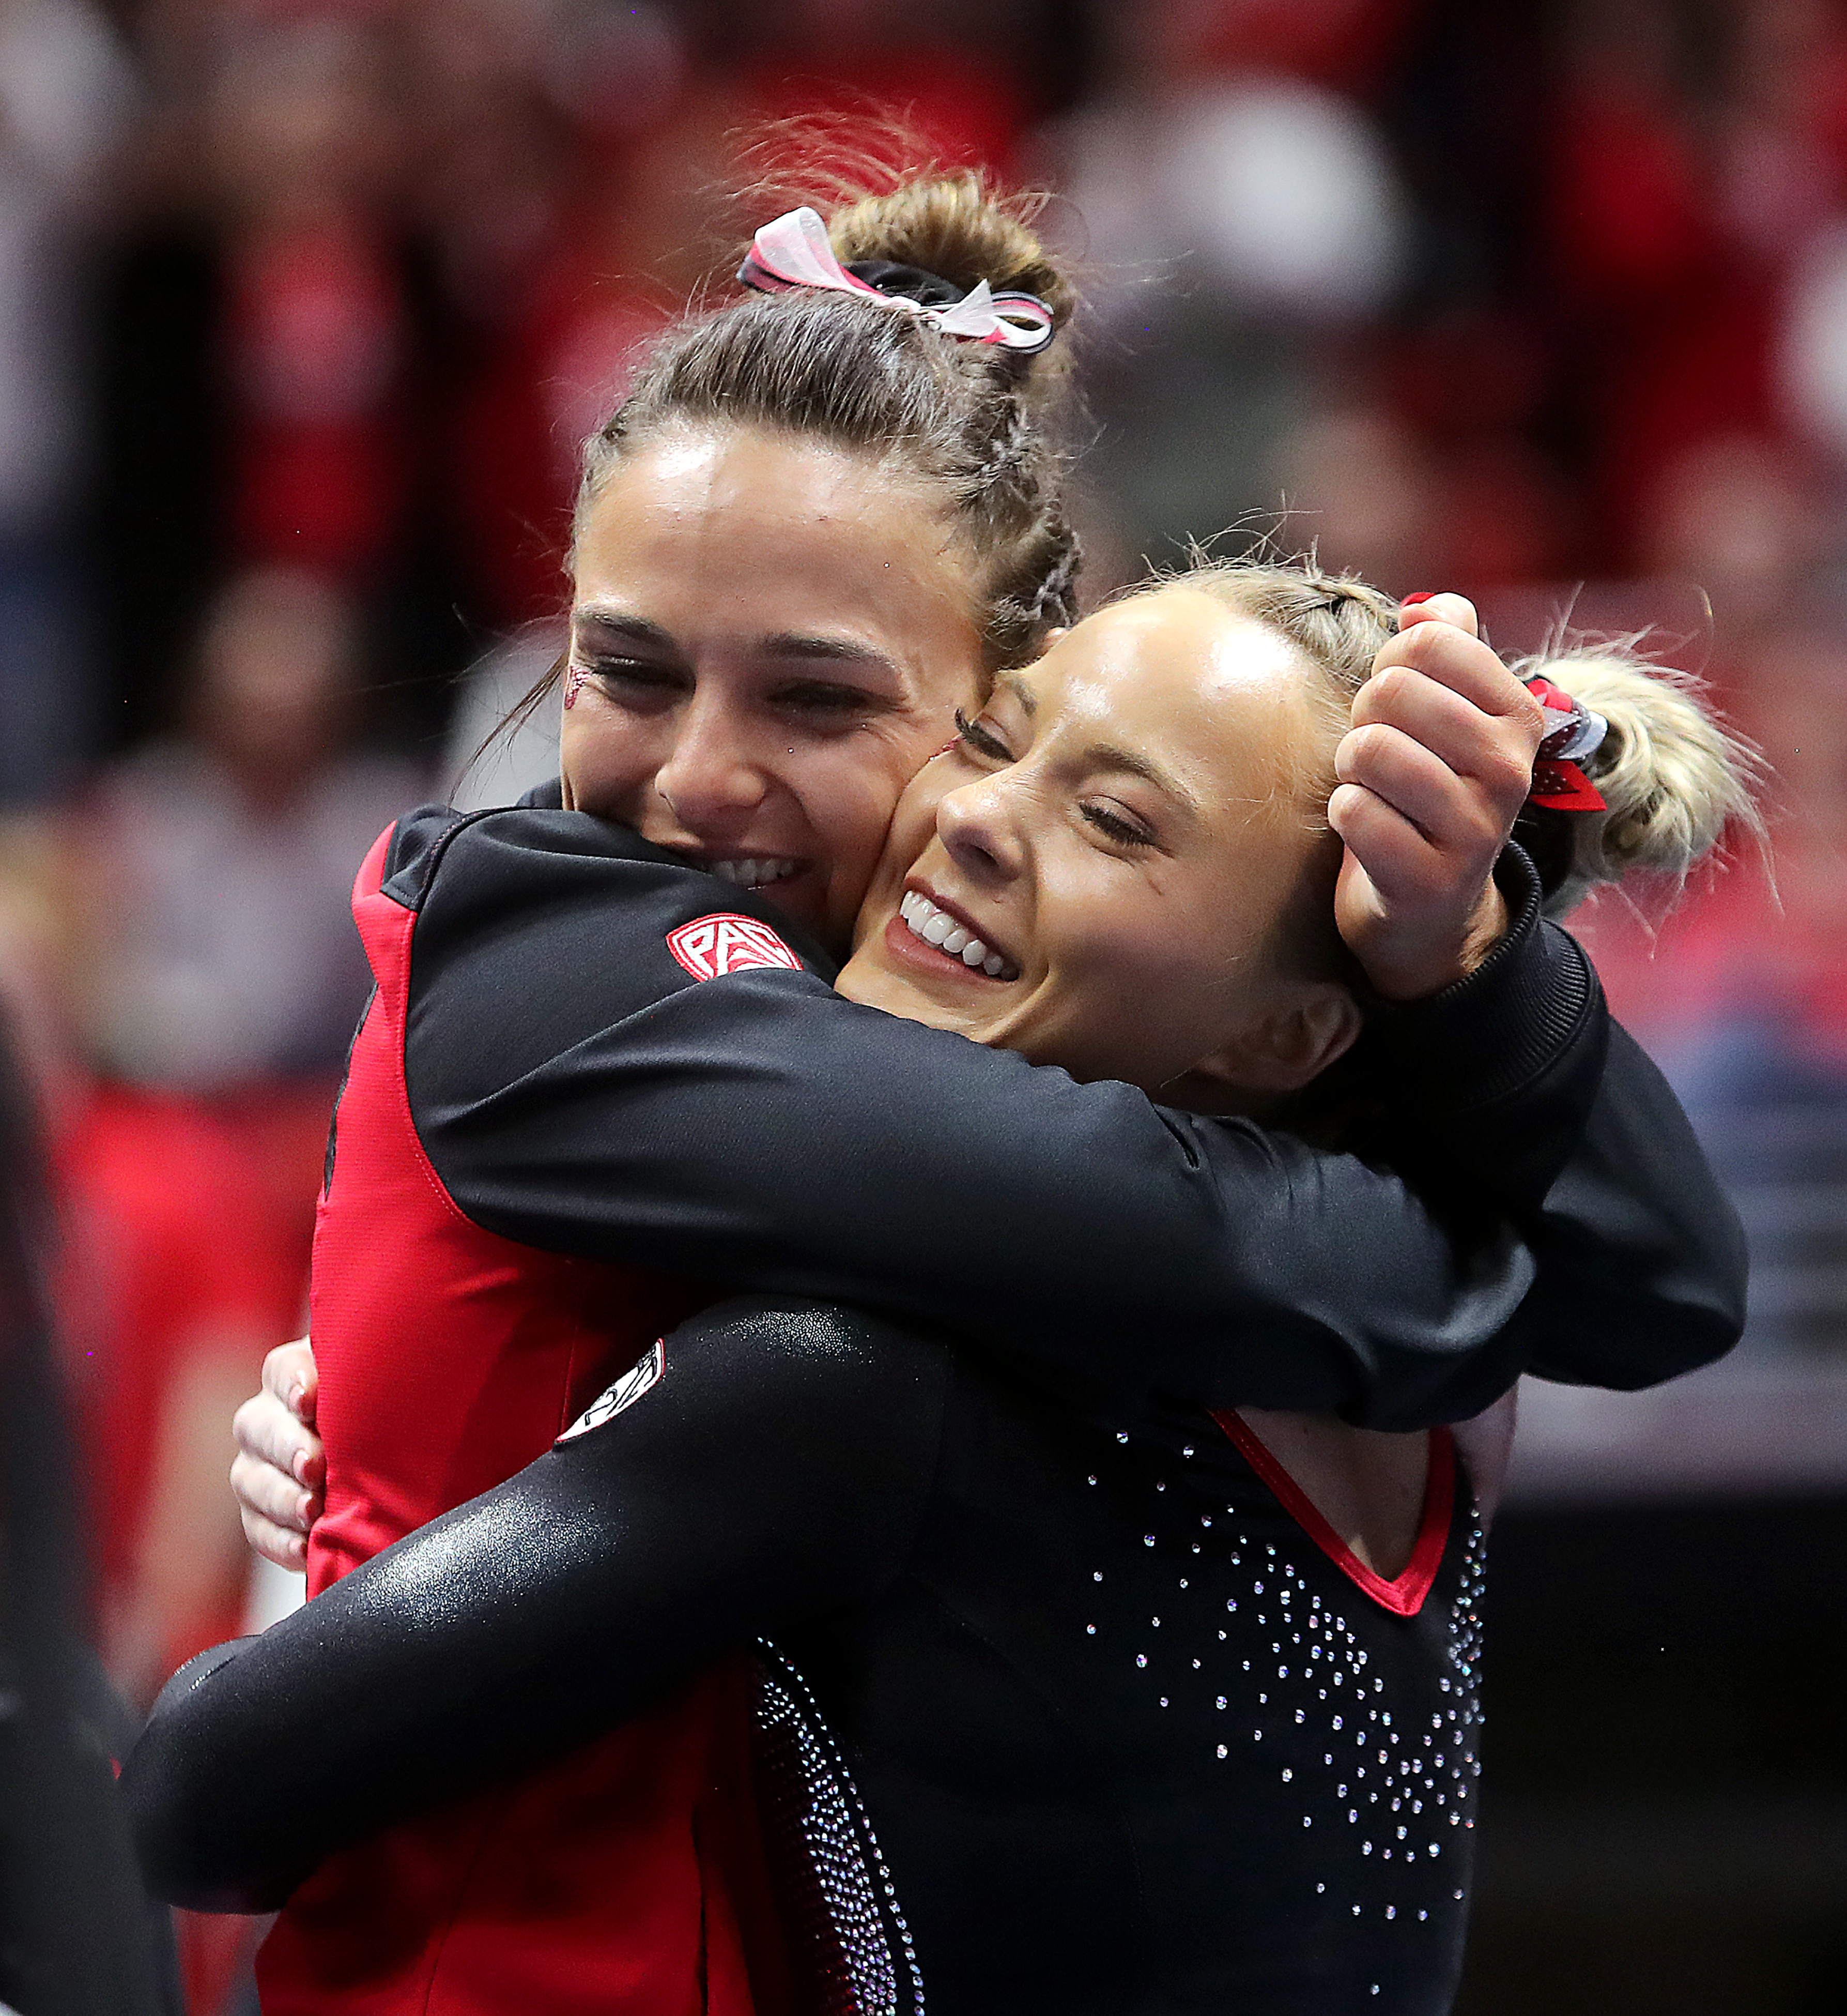 Macey Roberts hugs MyKayla Skinner after her floor routine as Utah and Michigan battle it out in Gymnastics at the Huntsman Center in Salt Lake City on Saturday, March 2, 2019.